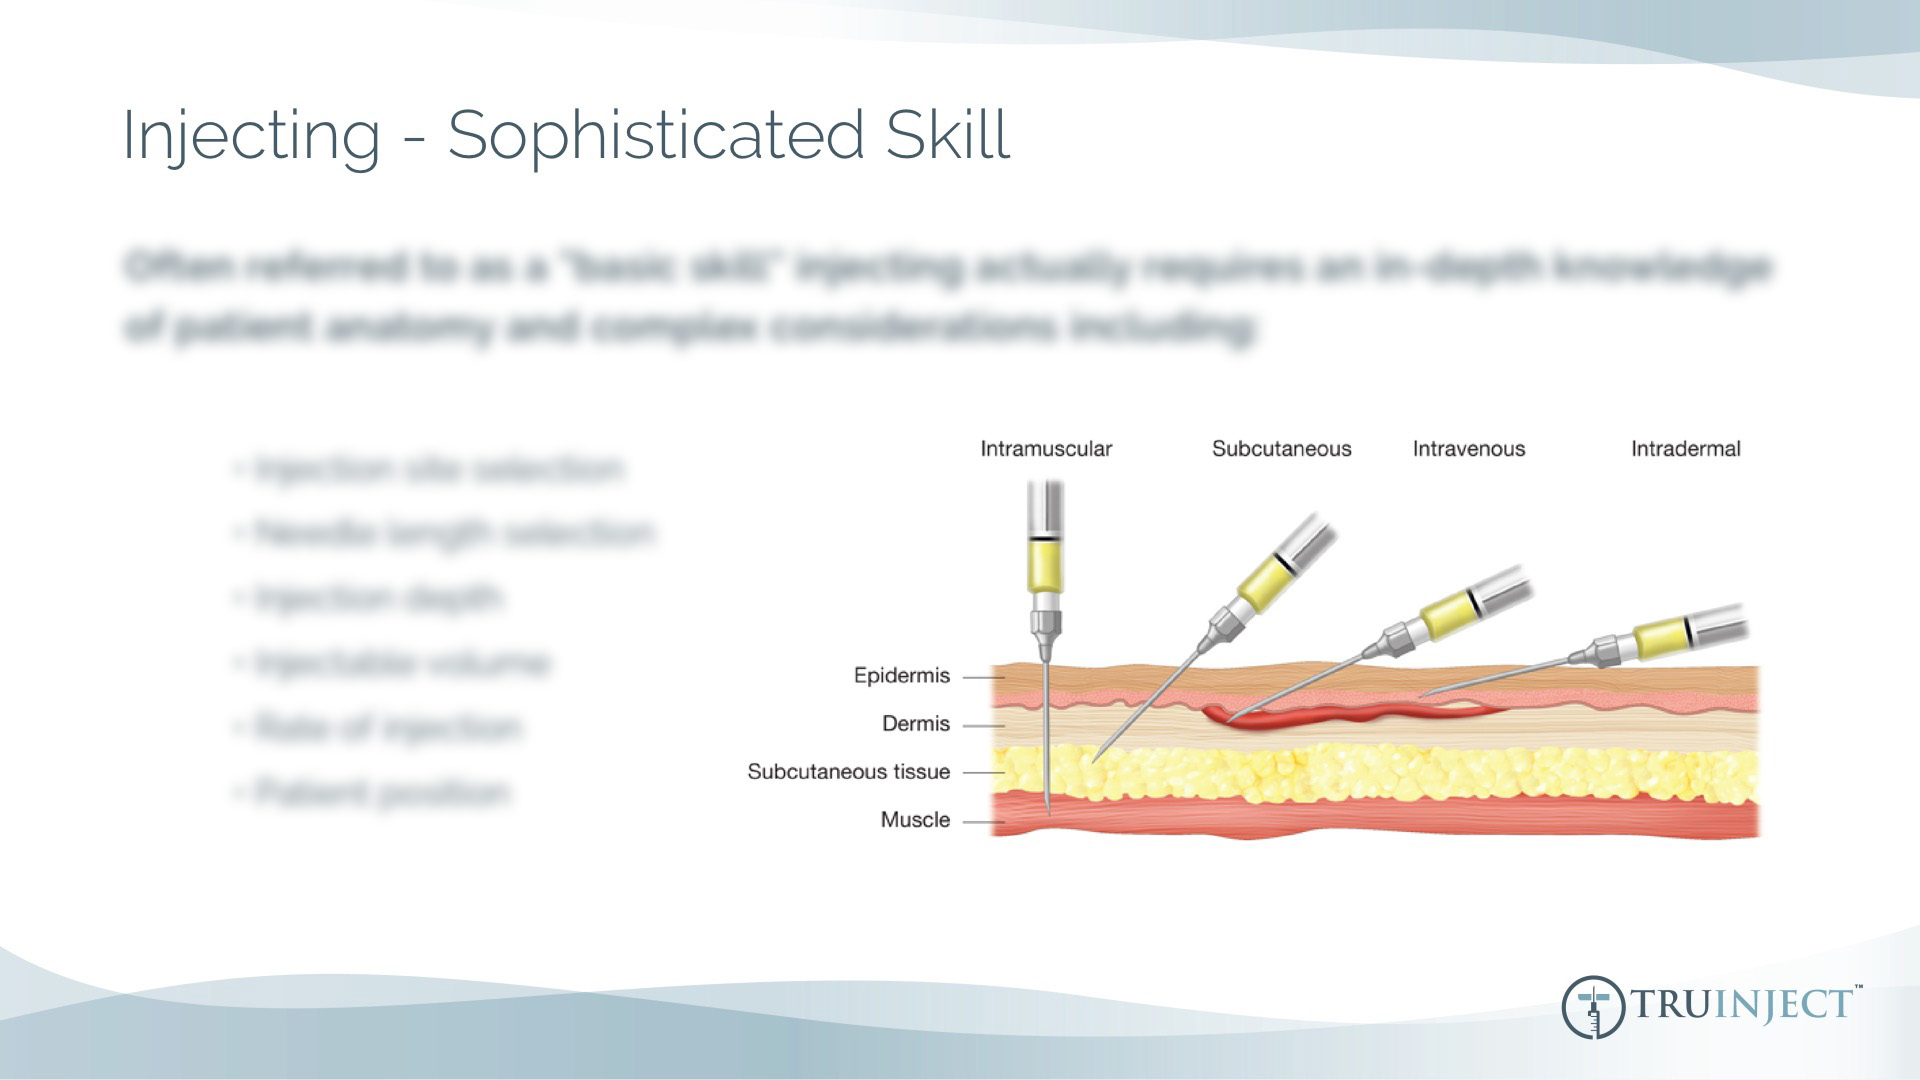 Truinject Corporate Deck - Injecting - Sophisticated Skill Medical Illustration